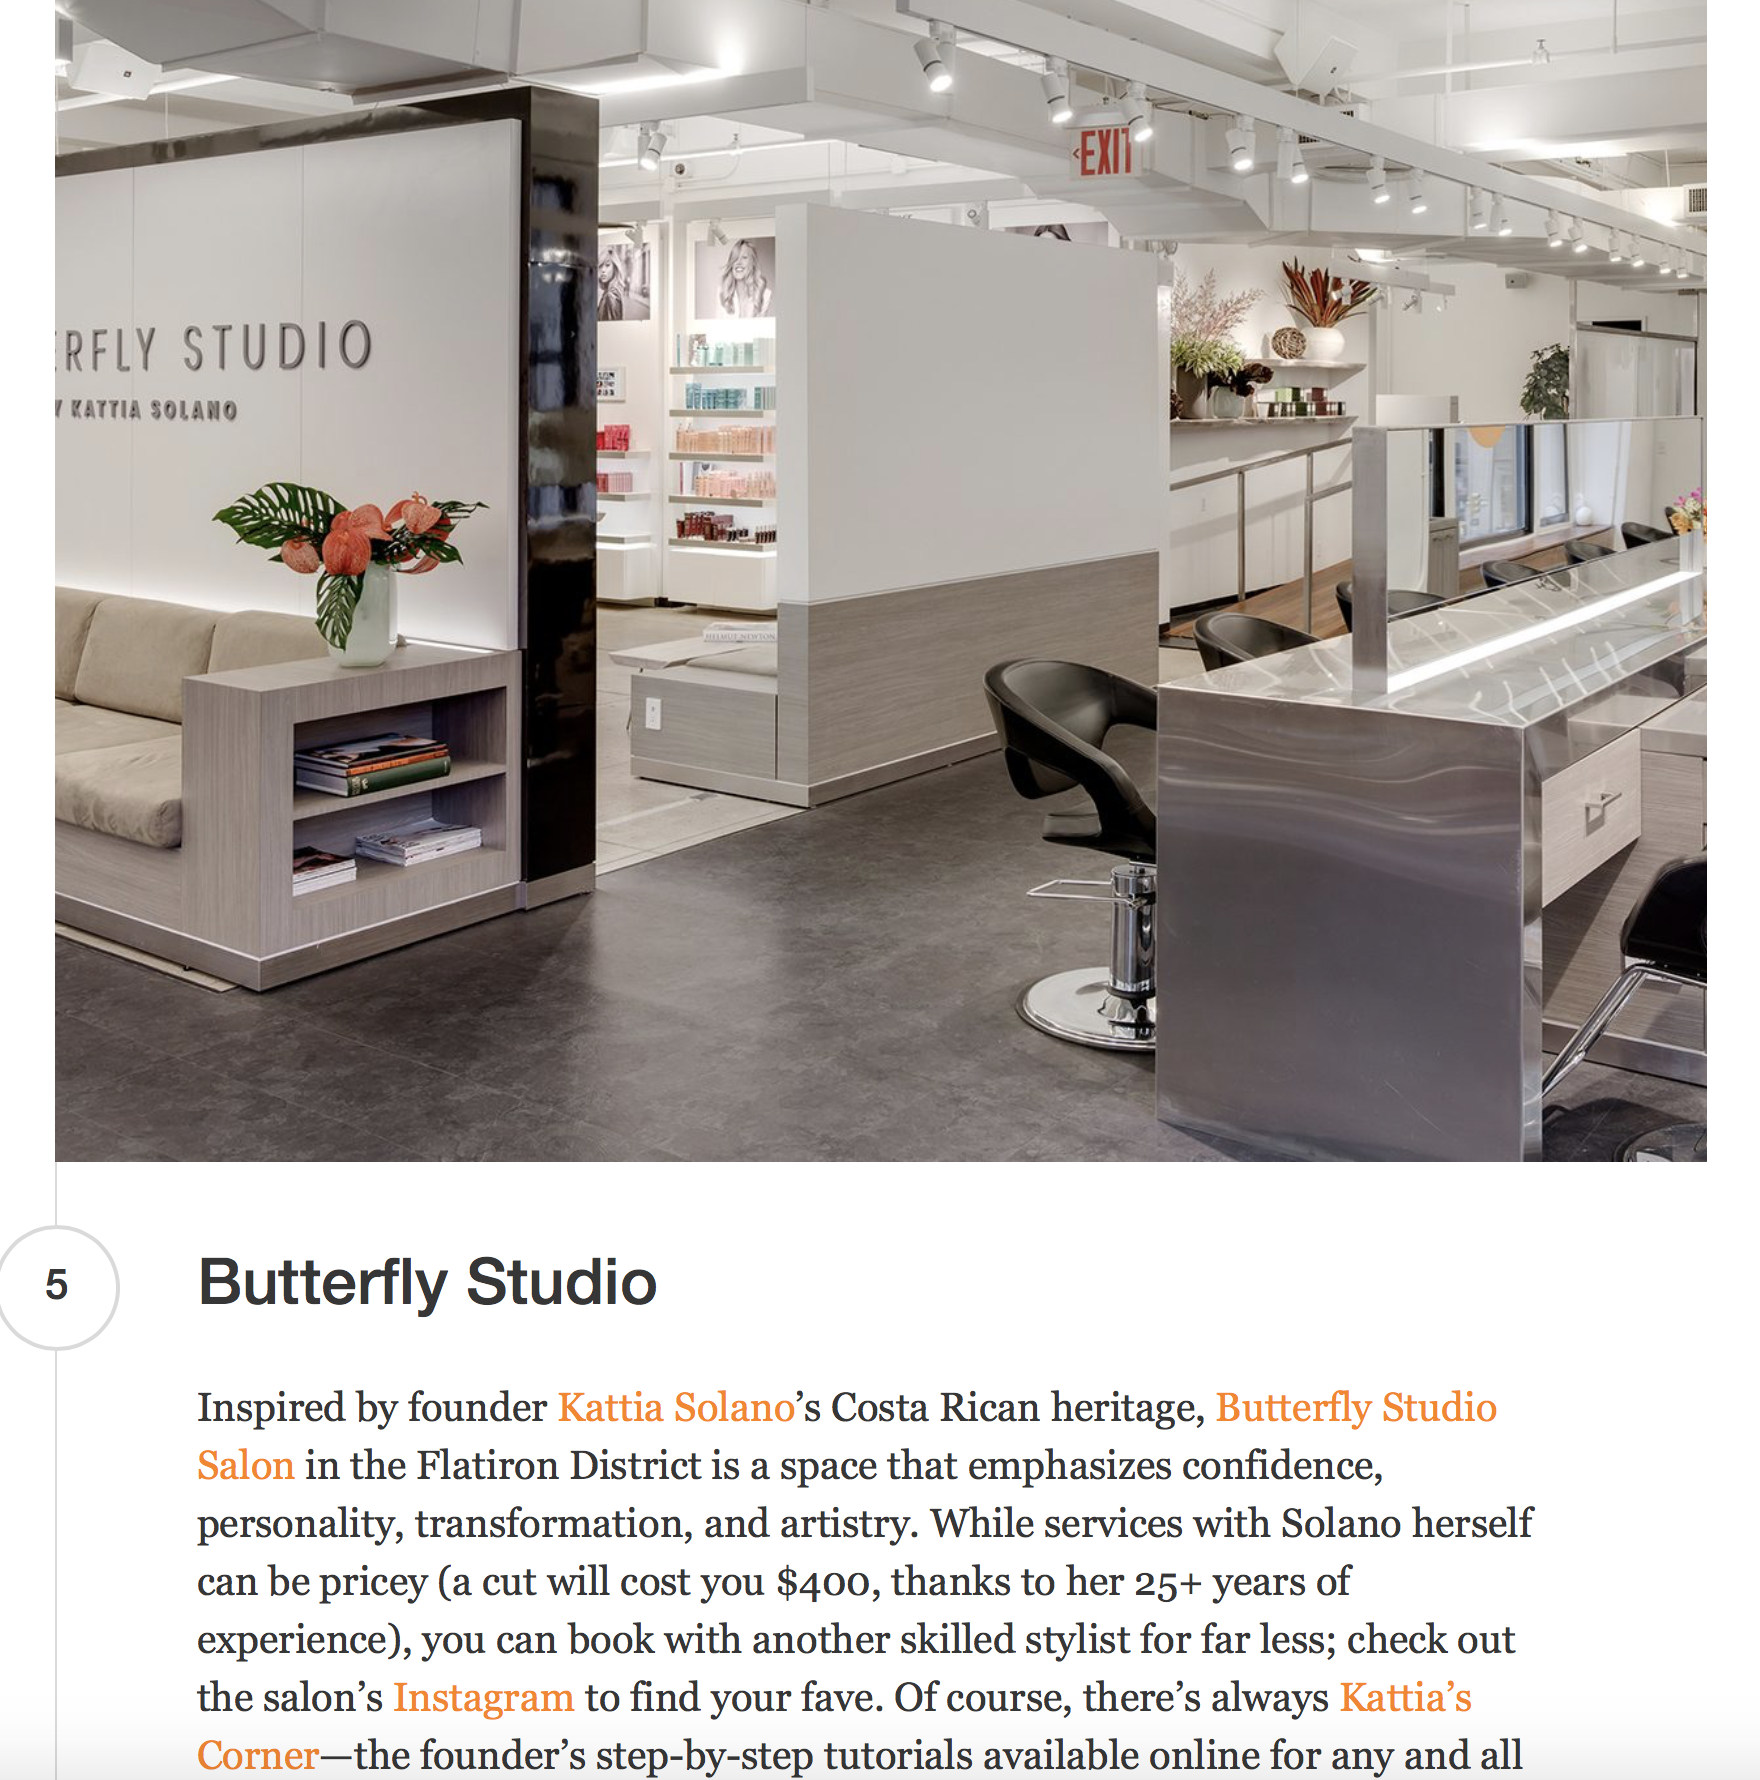 JETSETTER.COM   The 11 Best Salons in NYC Now (2019)